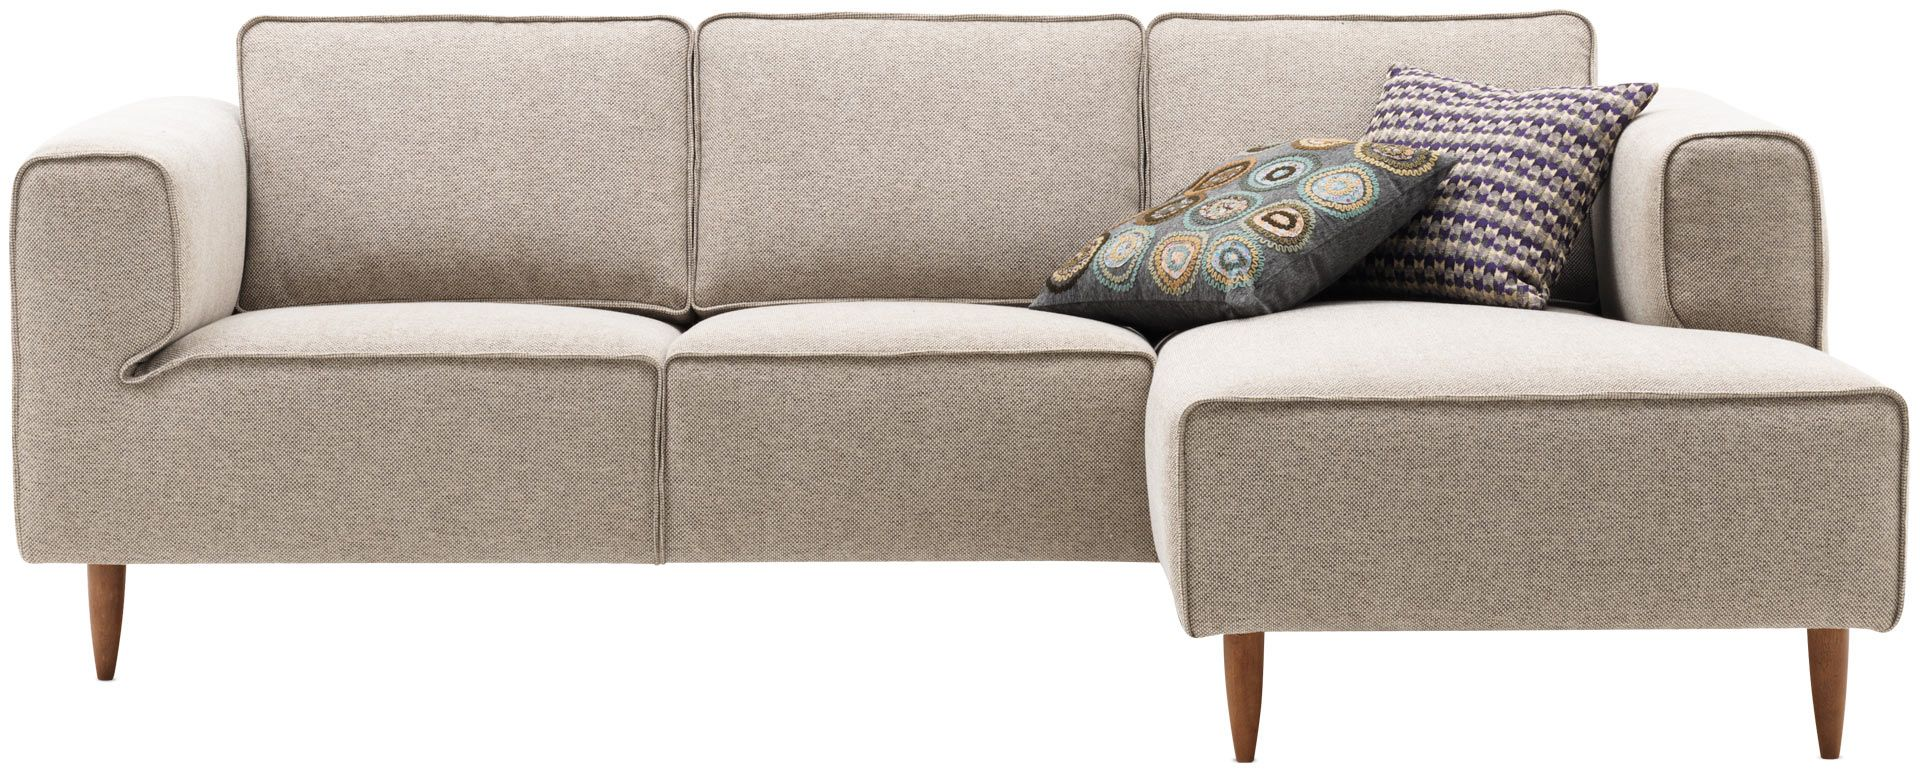 Modern Design Sofa Contemporary Boconcept Starts At 2521 This